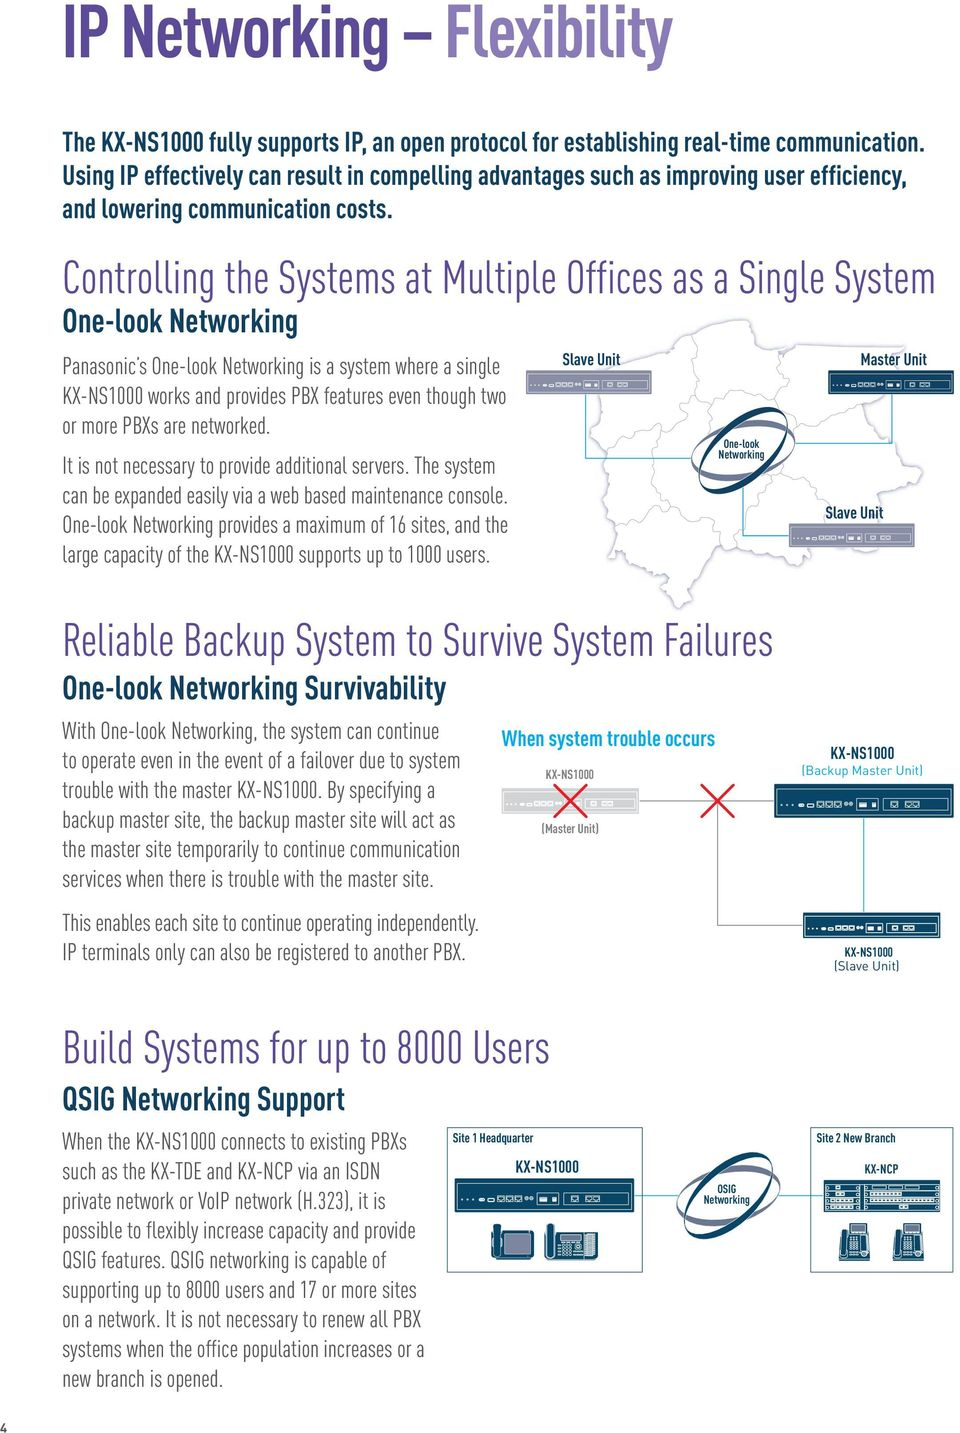 Controlling the Systems at Multiple Offices as a Single System One-look Networking Panasonic s One-look Networking is a system where a single works and provides PBX features even though two or more